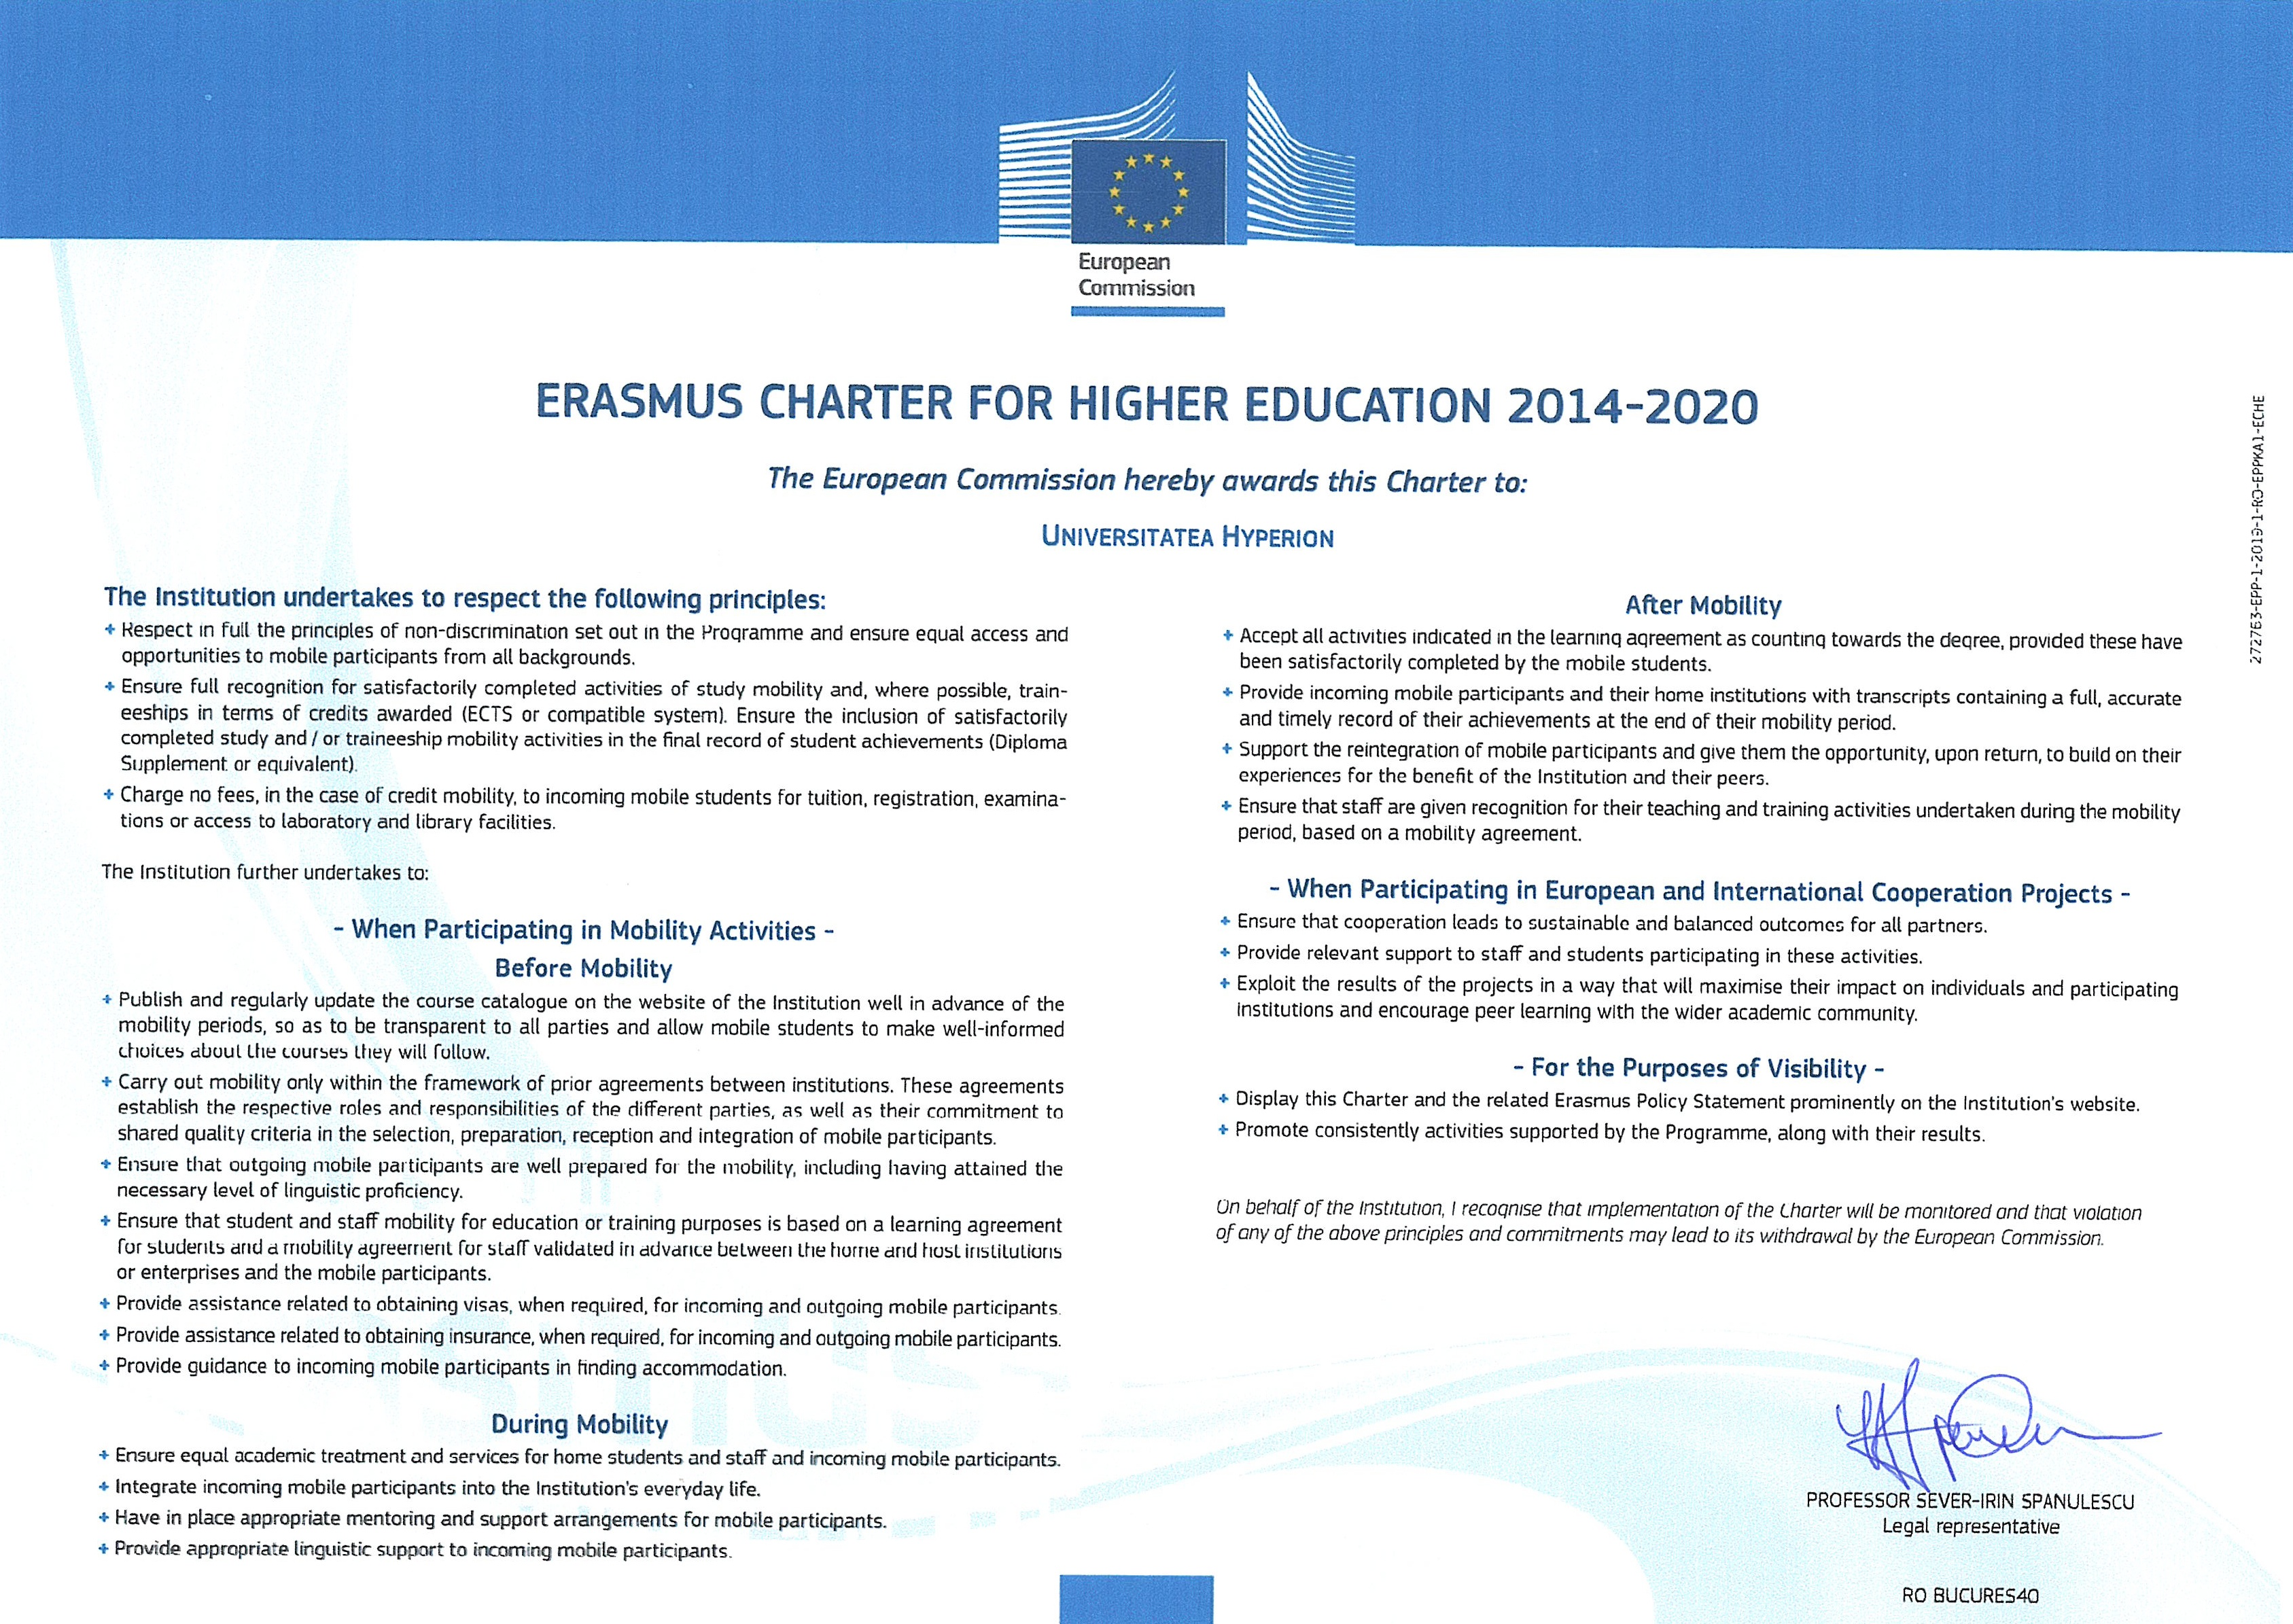 Carta Erasmus+ 2014-2020 Universitatea Hyperion